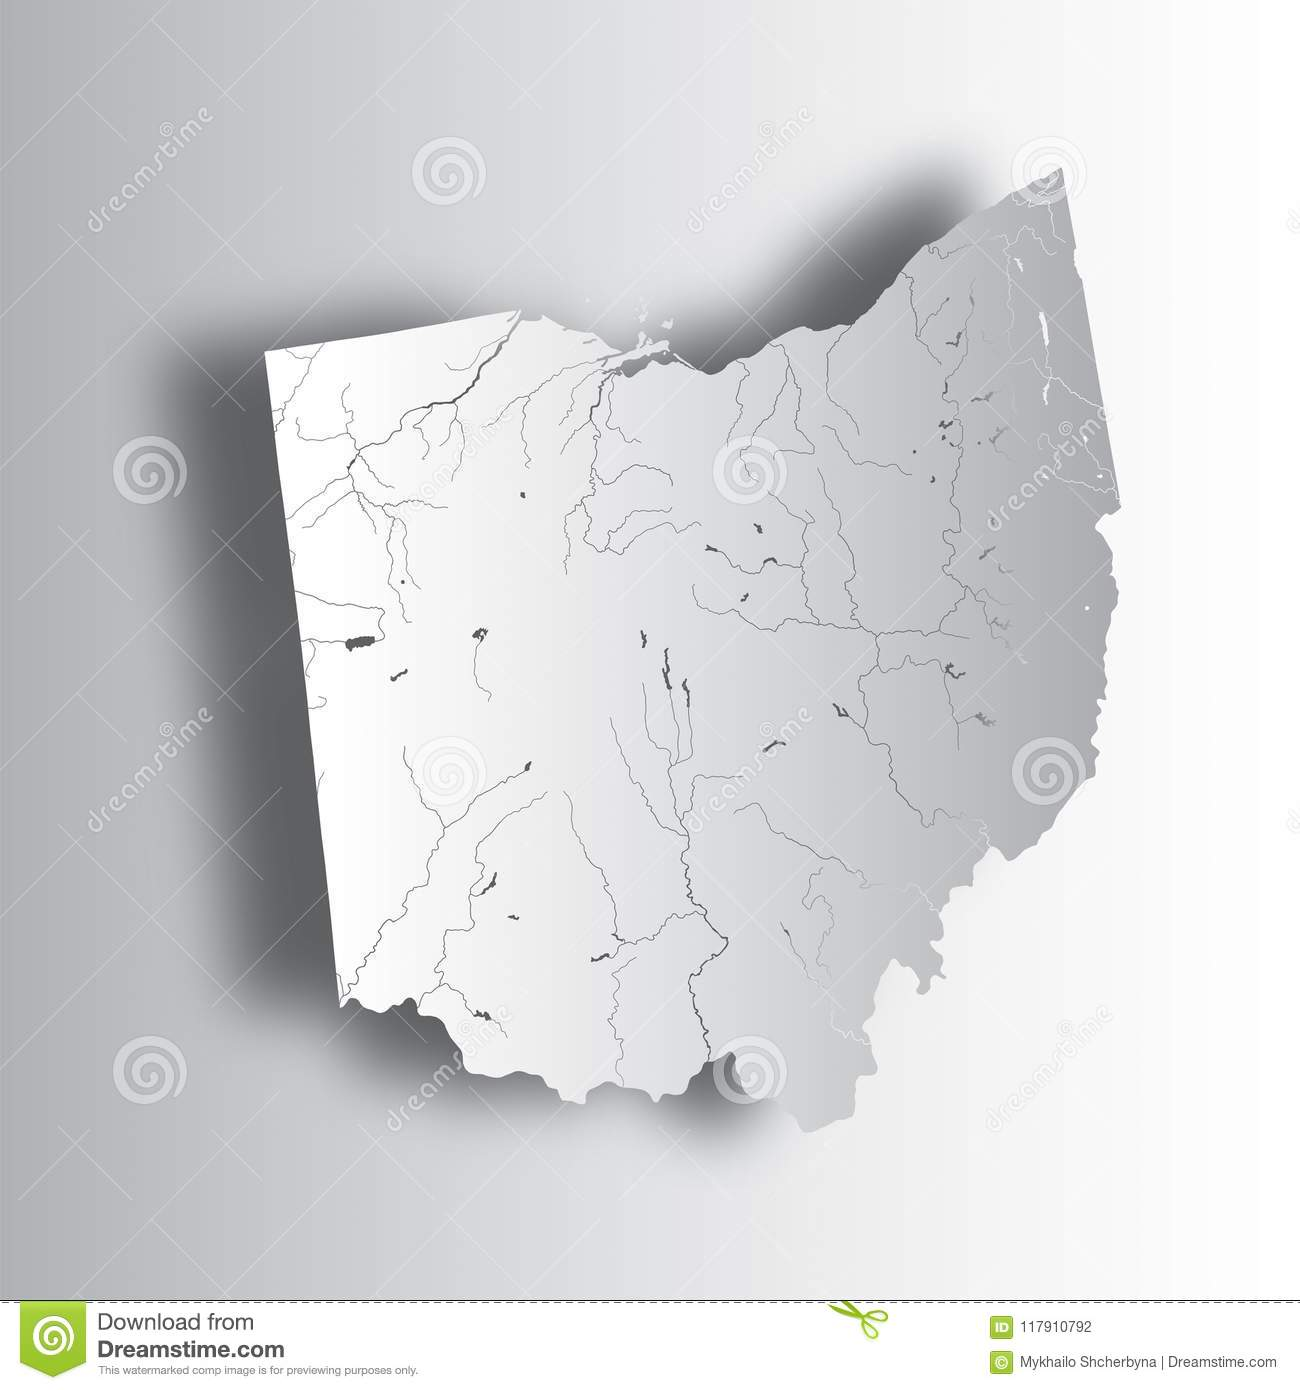 Map Of Ohio With Lakes And Rivers Stock Vector Illustration Of